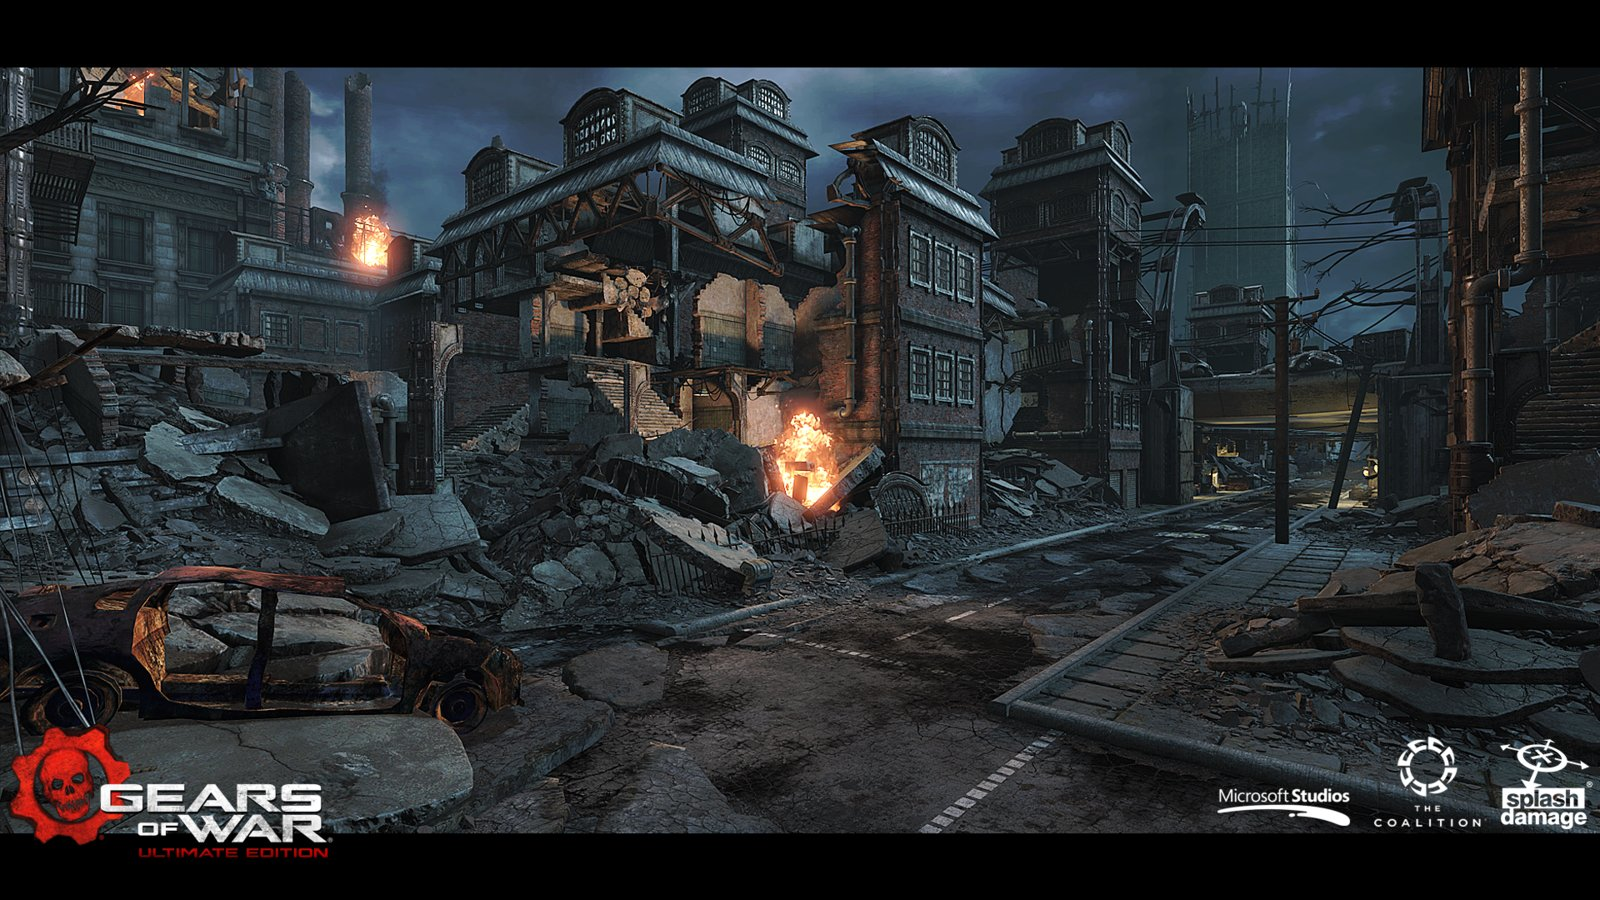 Viaducts - Some examples of my collapsed rubble assets being used.